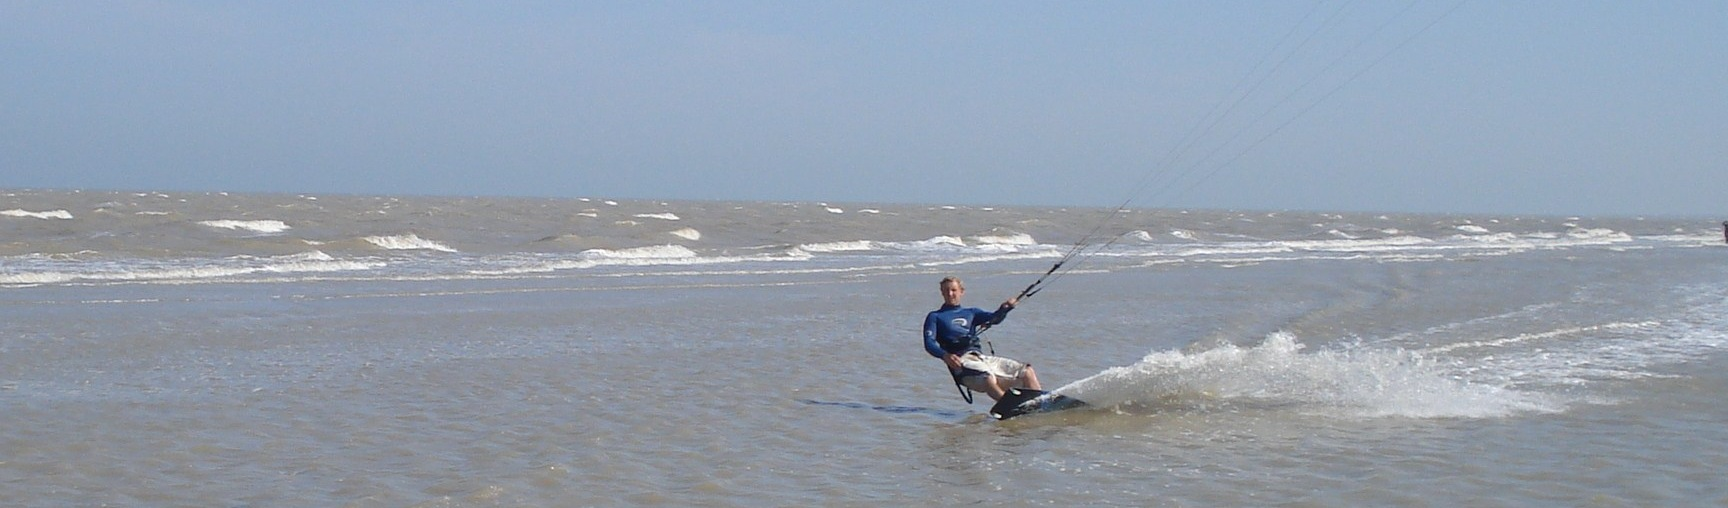 Kitesurfing South Coast